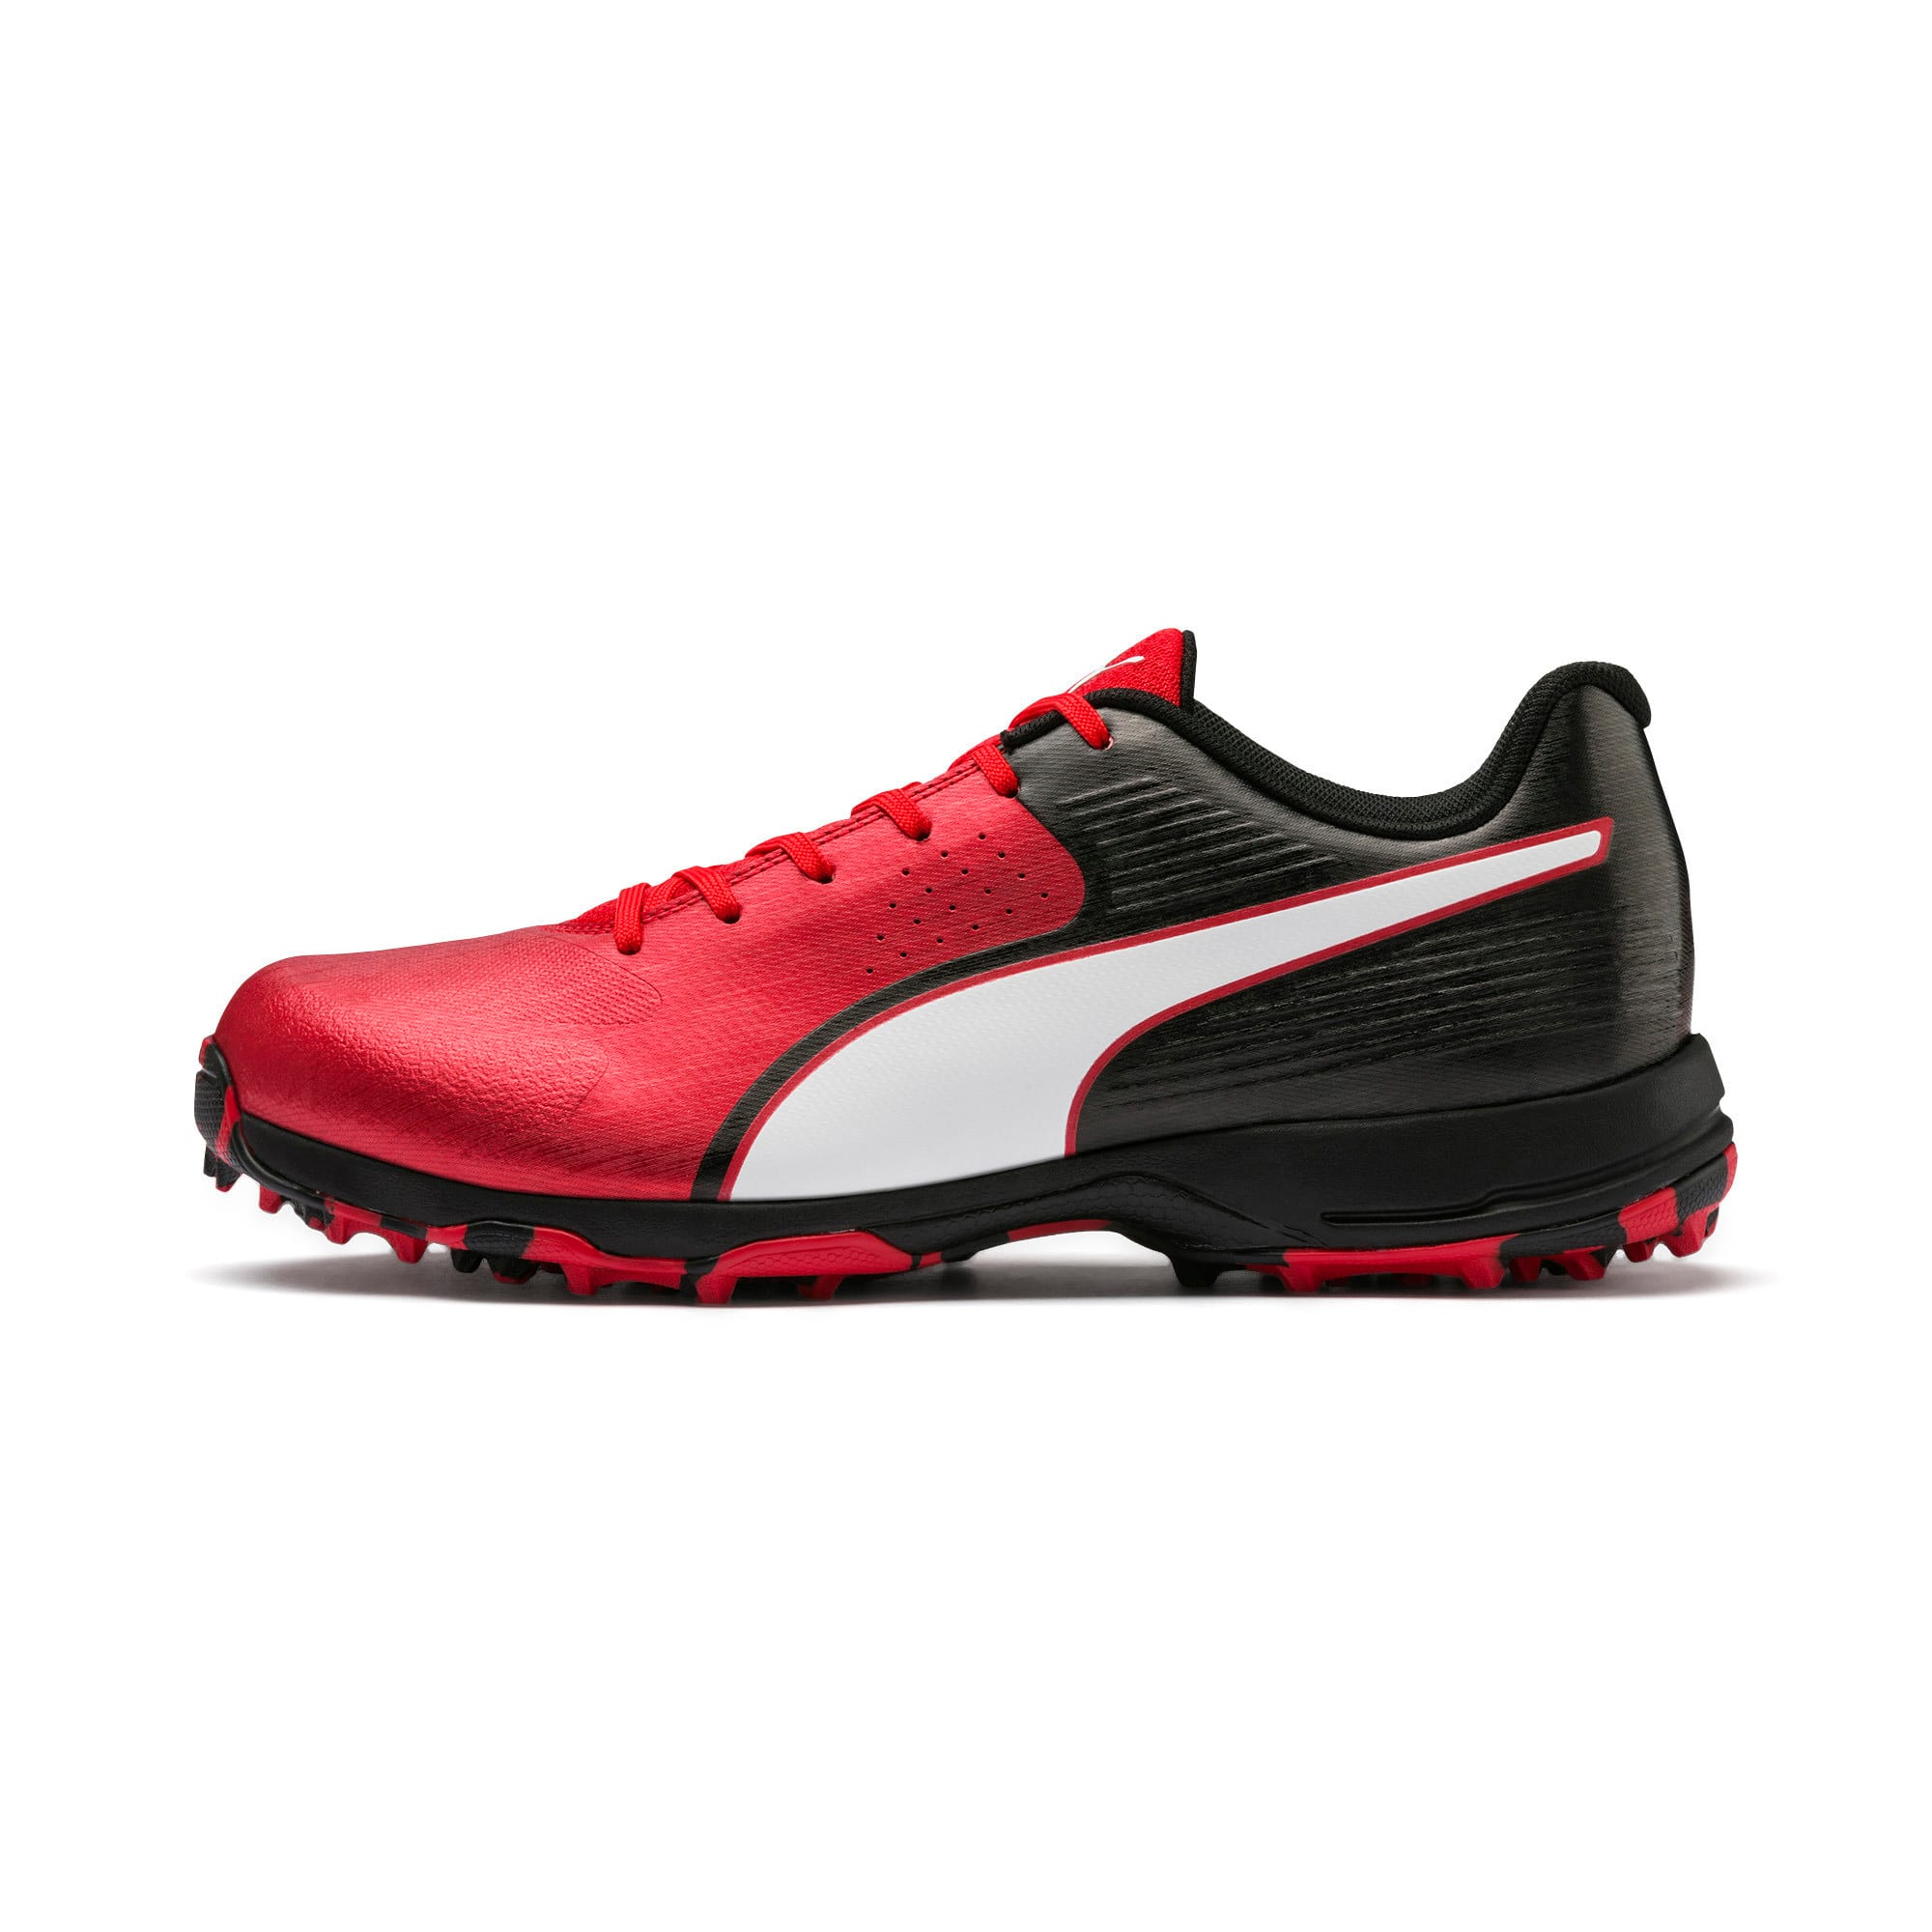 Thumbnail 1 of PUMA 19 FH Rubber Men's Cricket Shoes, High Risk Red-Black-White, medium-IND